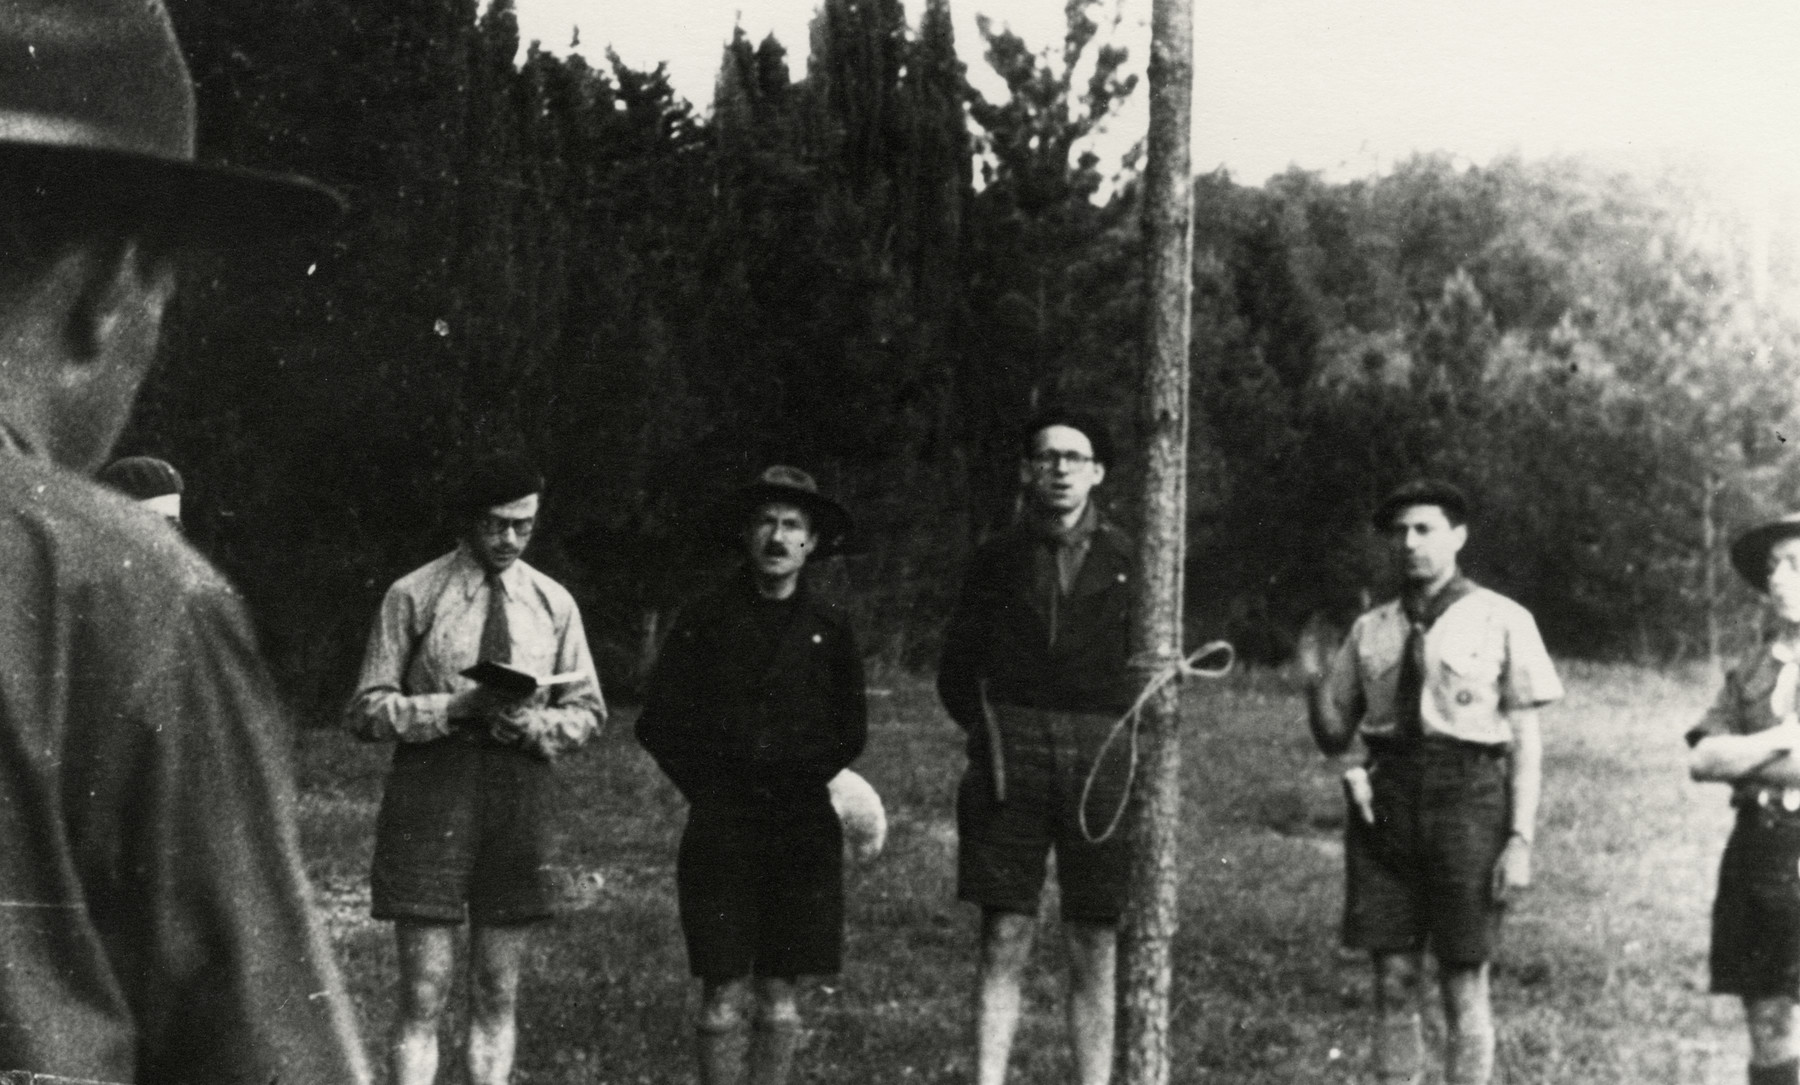 Seven members of the Eclaireurs Israelites gather around a pole, maybe singing.   Pictured third from the right is Leo Cohn.